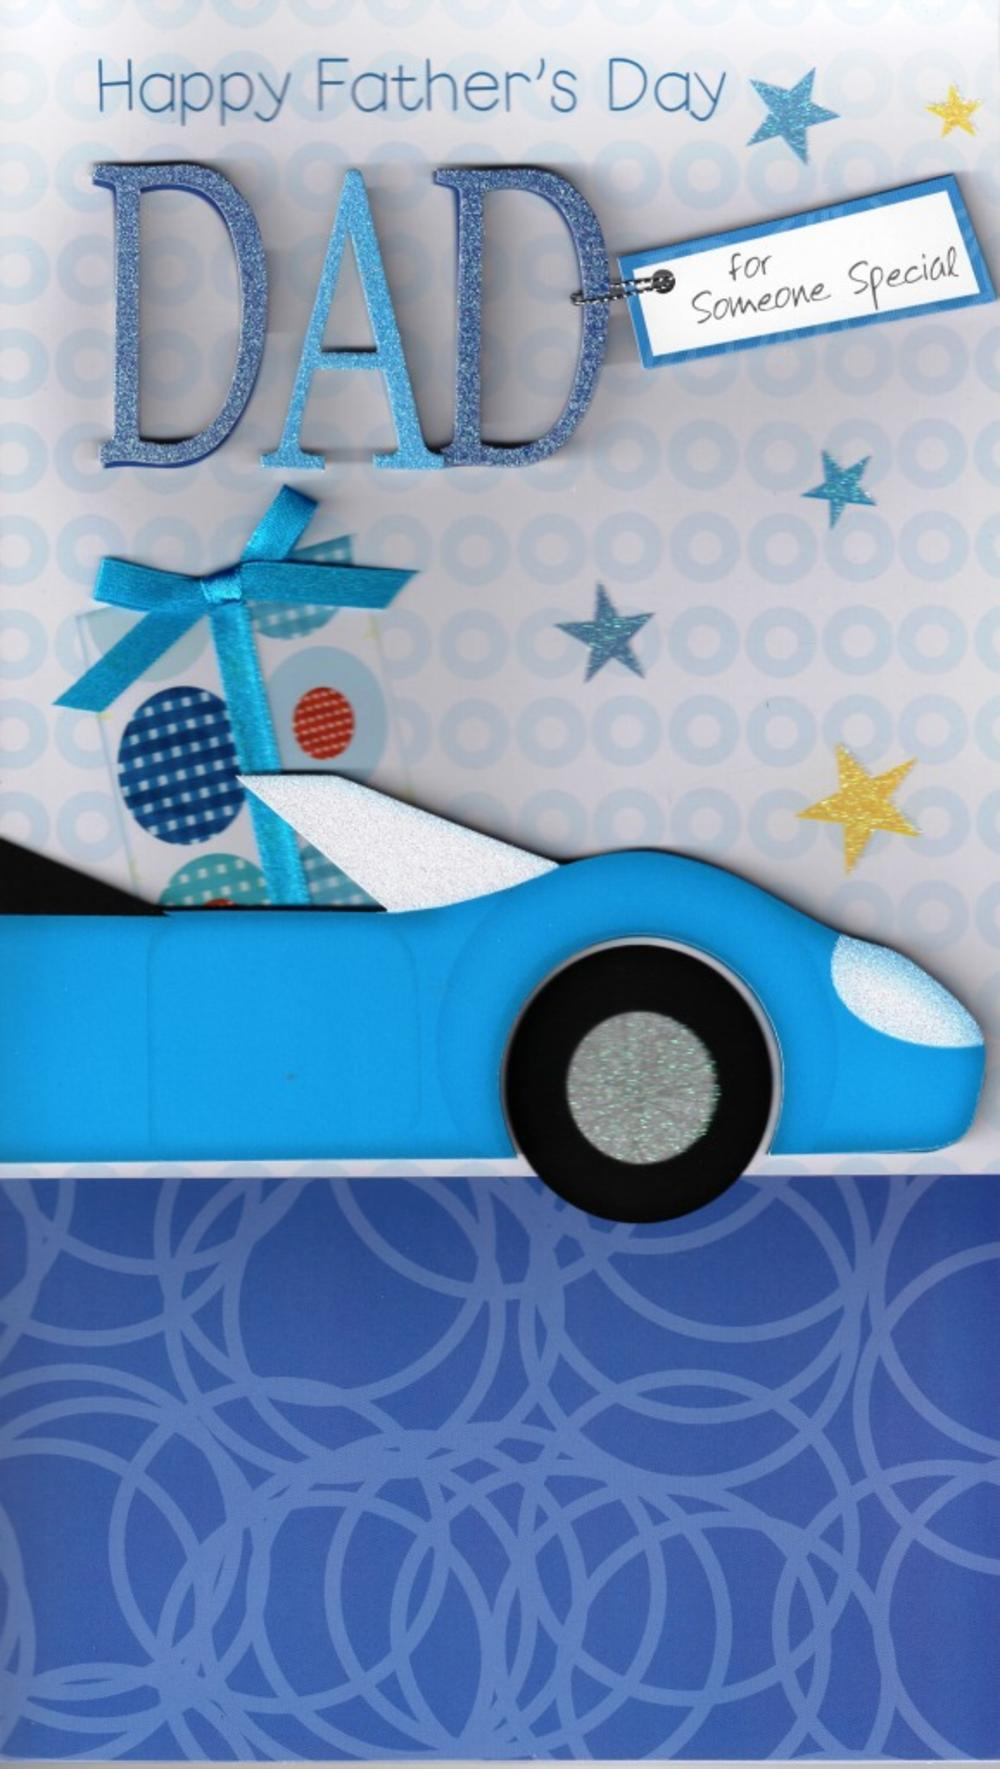 Dad Car Large Father's Day Card